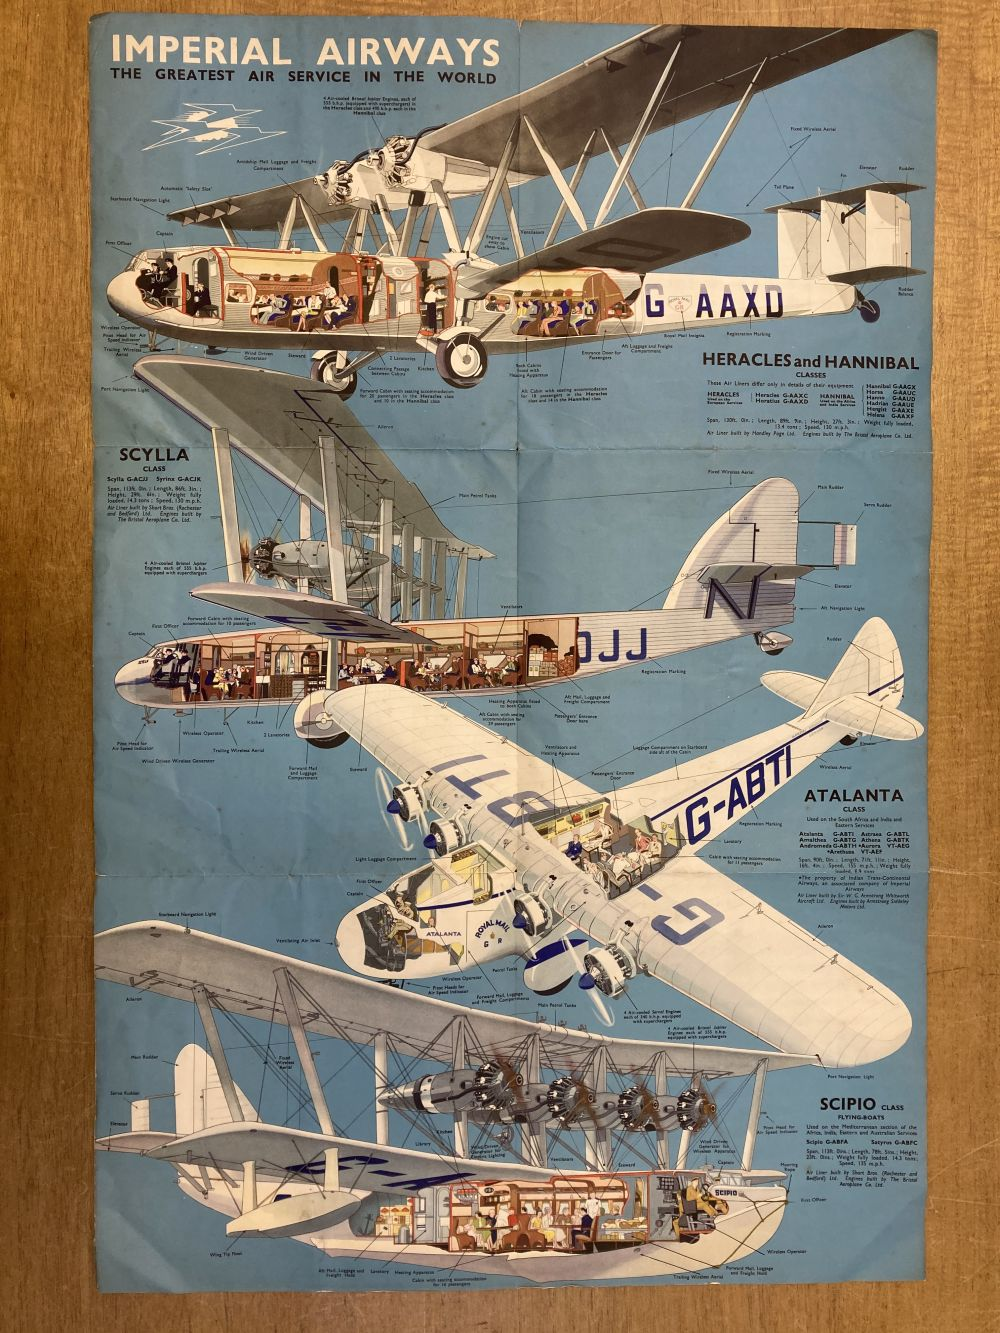 * Imperial Airways. The Greatest Air Service in the World - Image 3 of 3